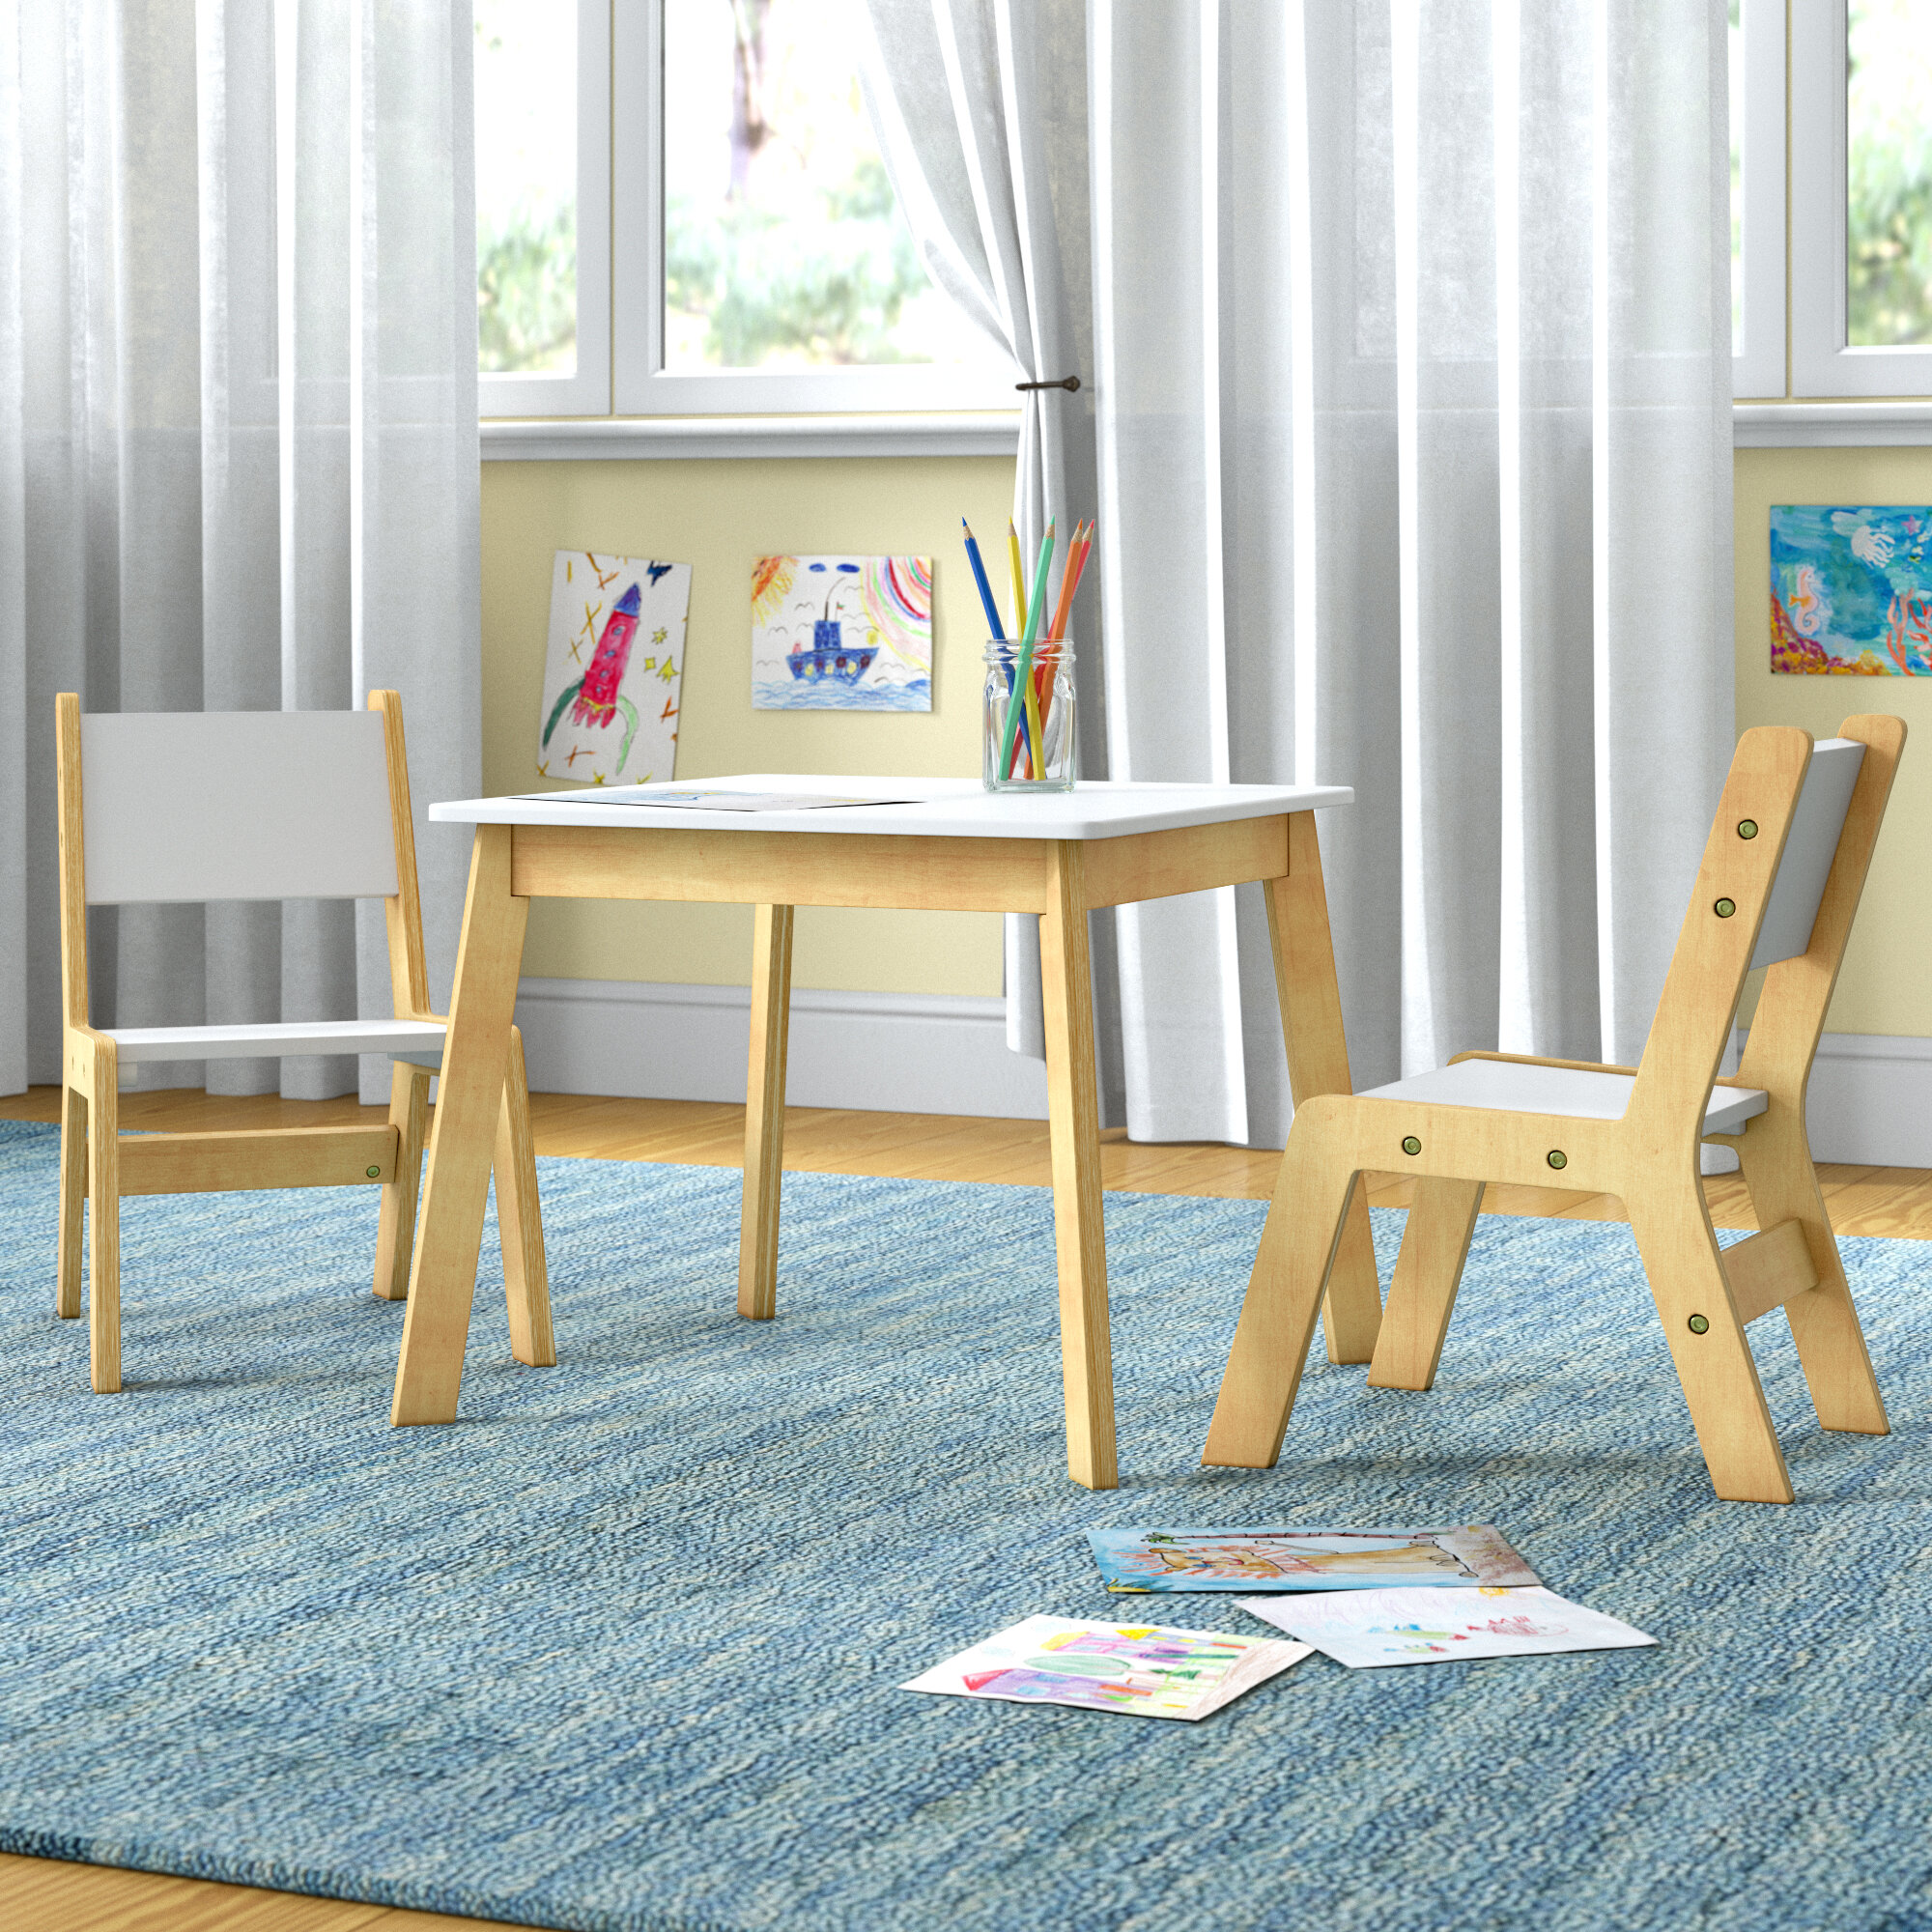 KidKraft 27025 Modern Table with 2 Chair Set White and Natural